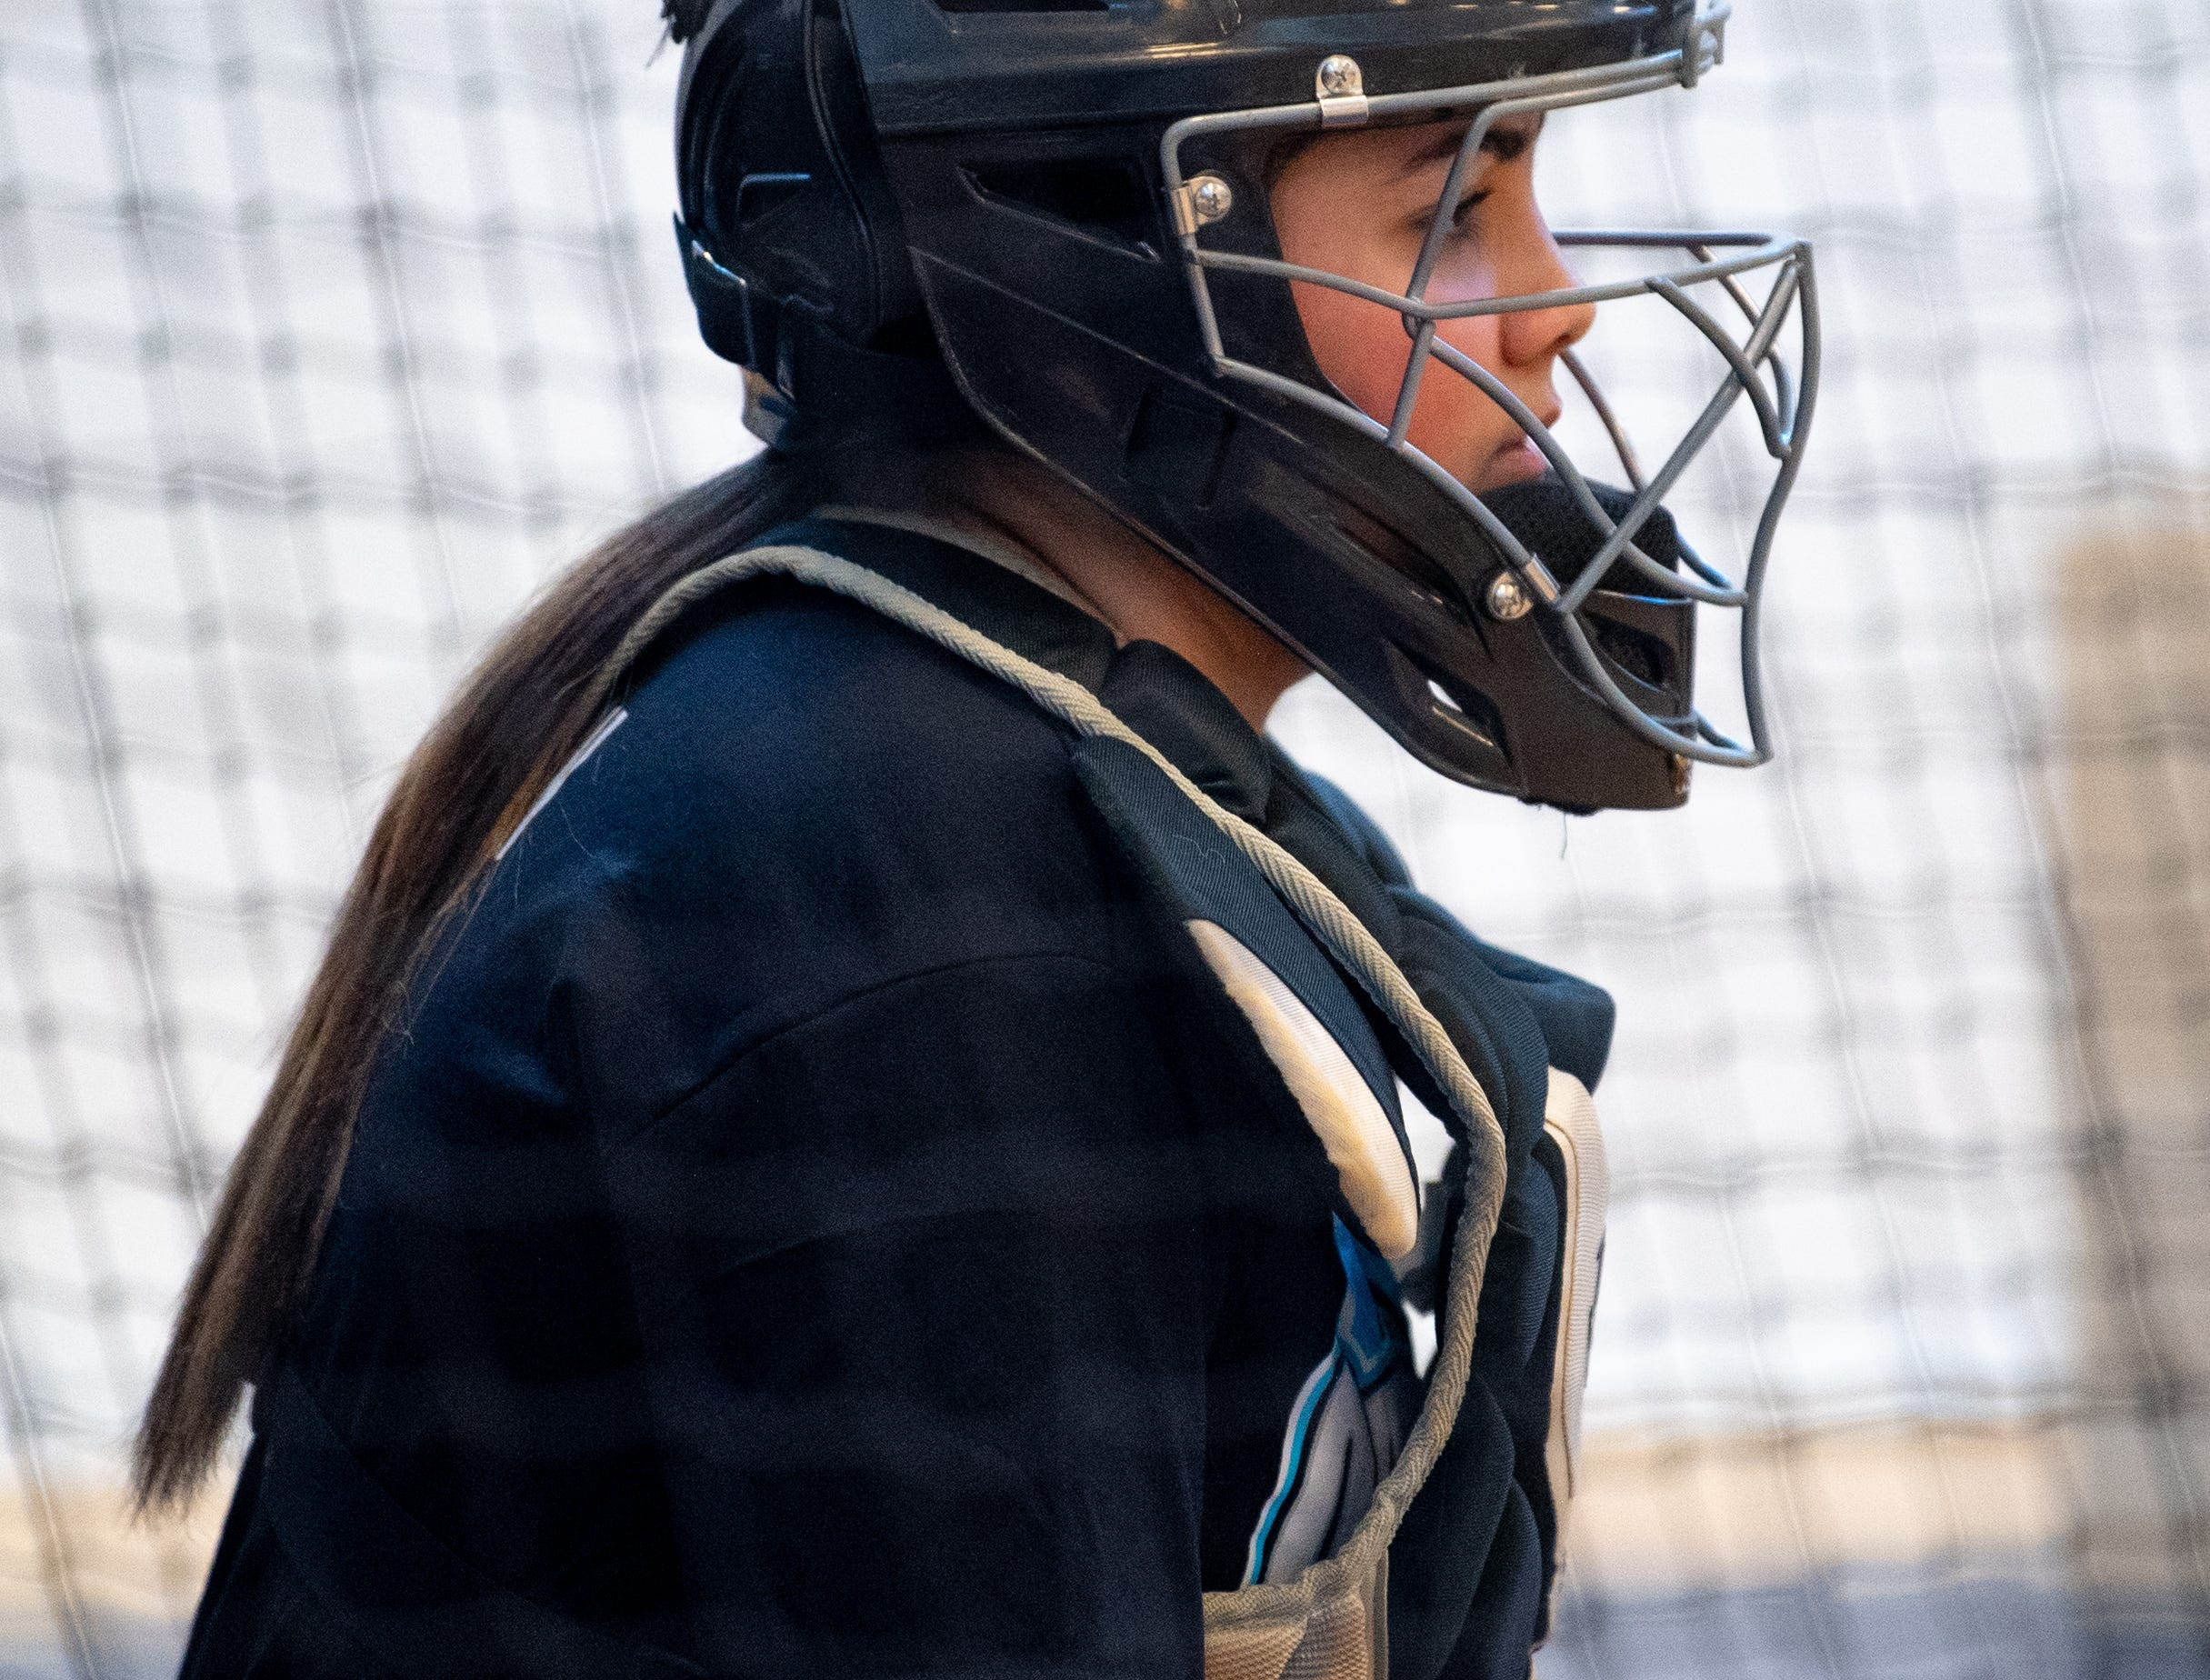 The catcher suggests what type of ball to throw during West York's softball practice, March 5, 2019.